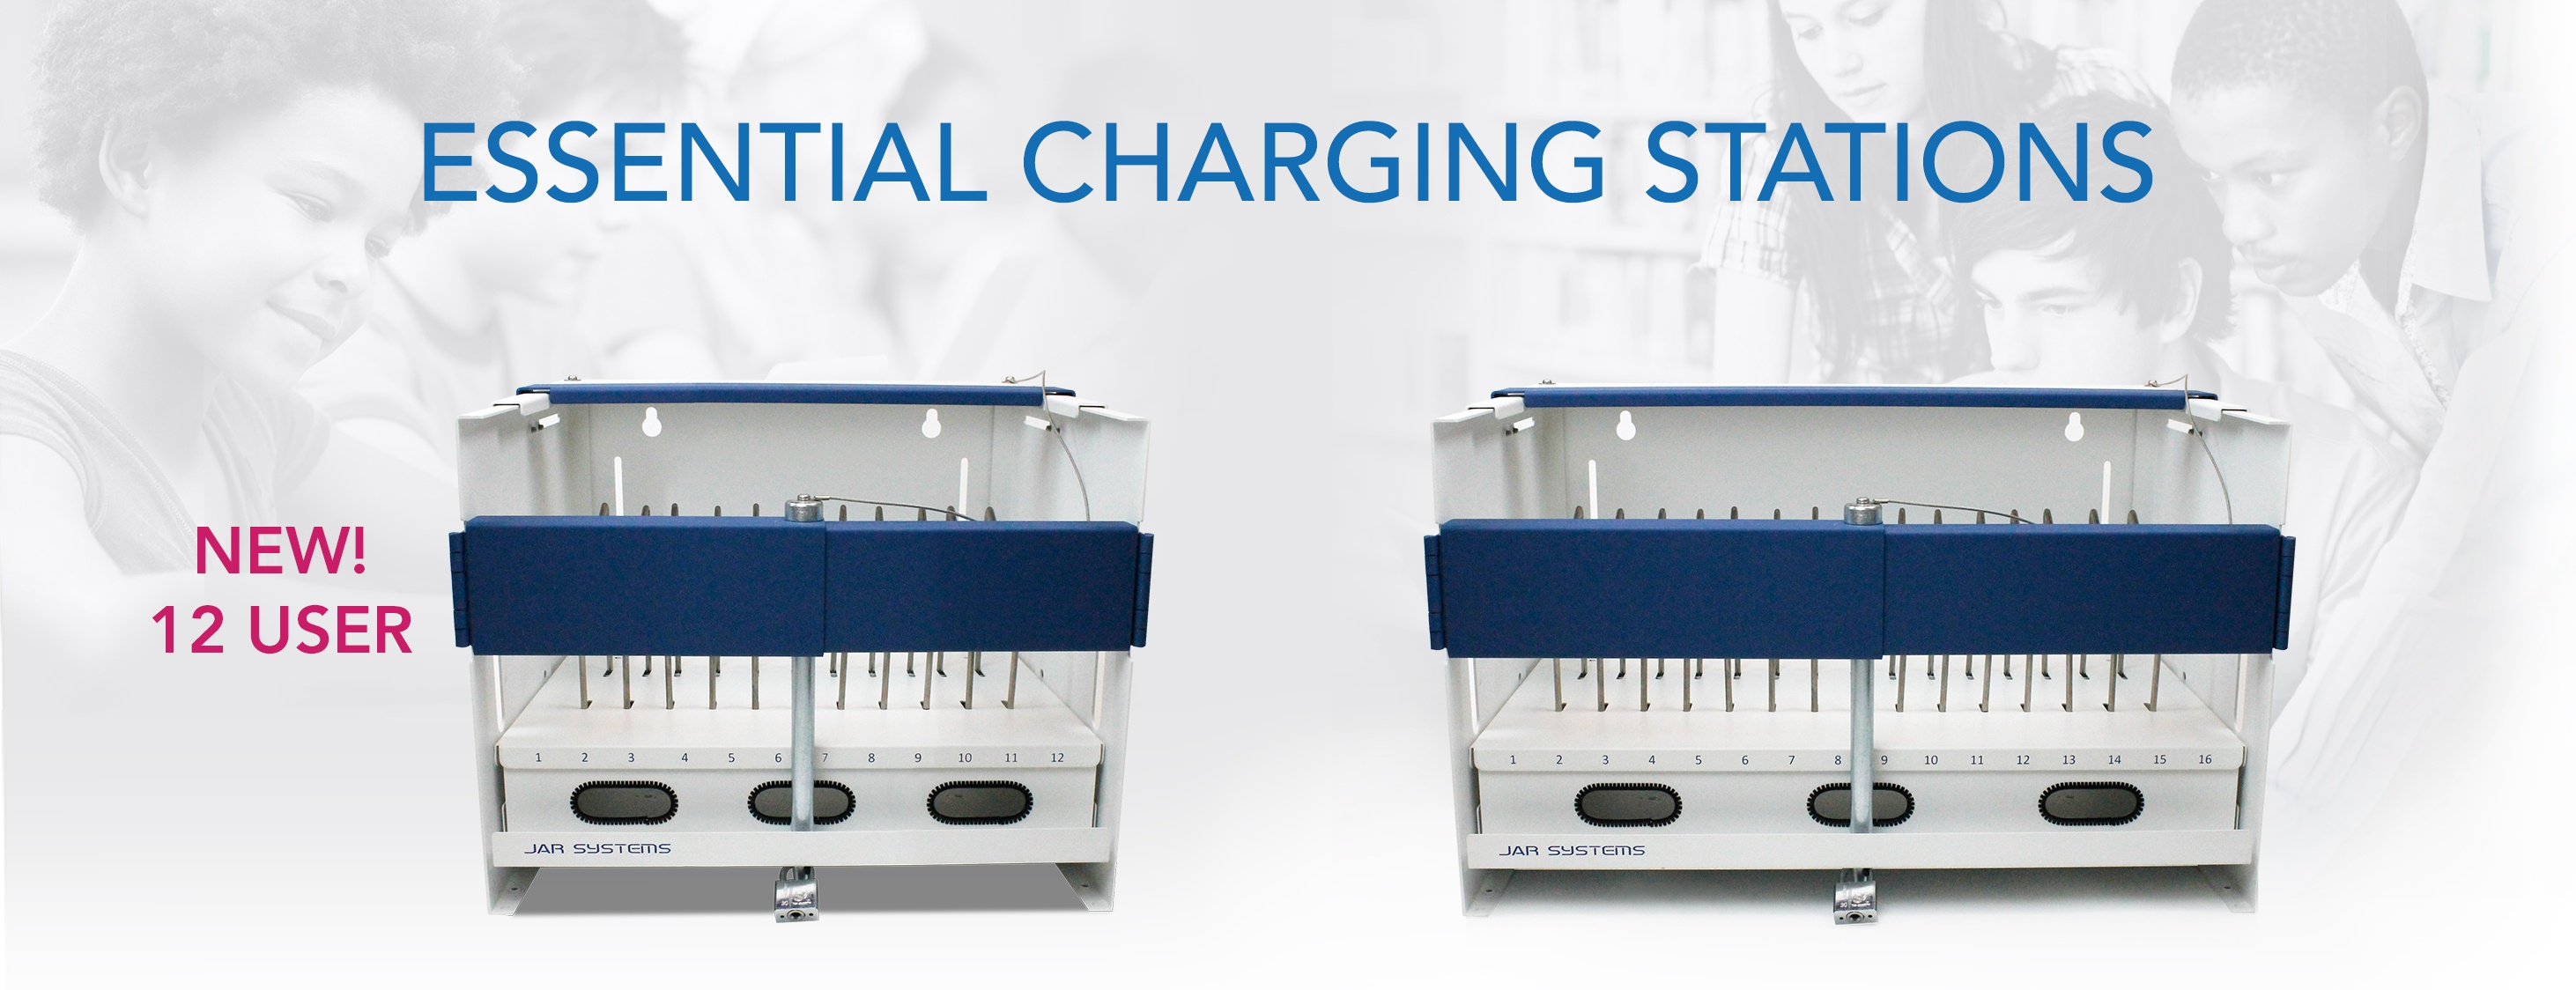 New 12 User Essential Charging Station